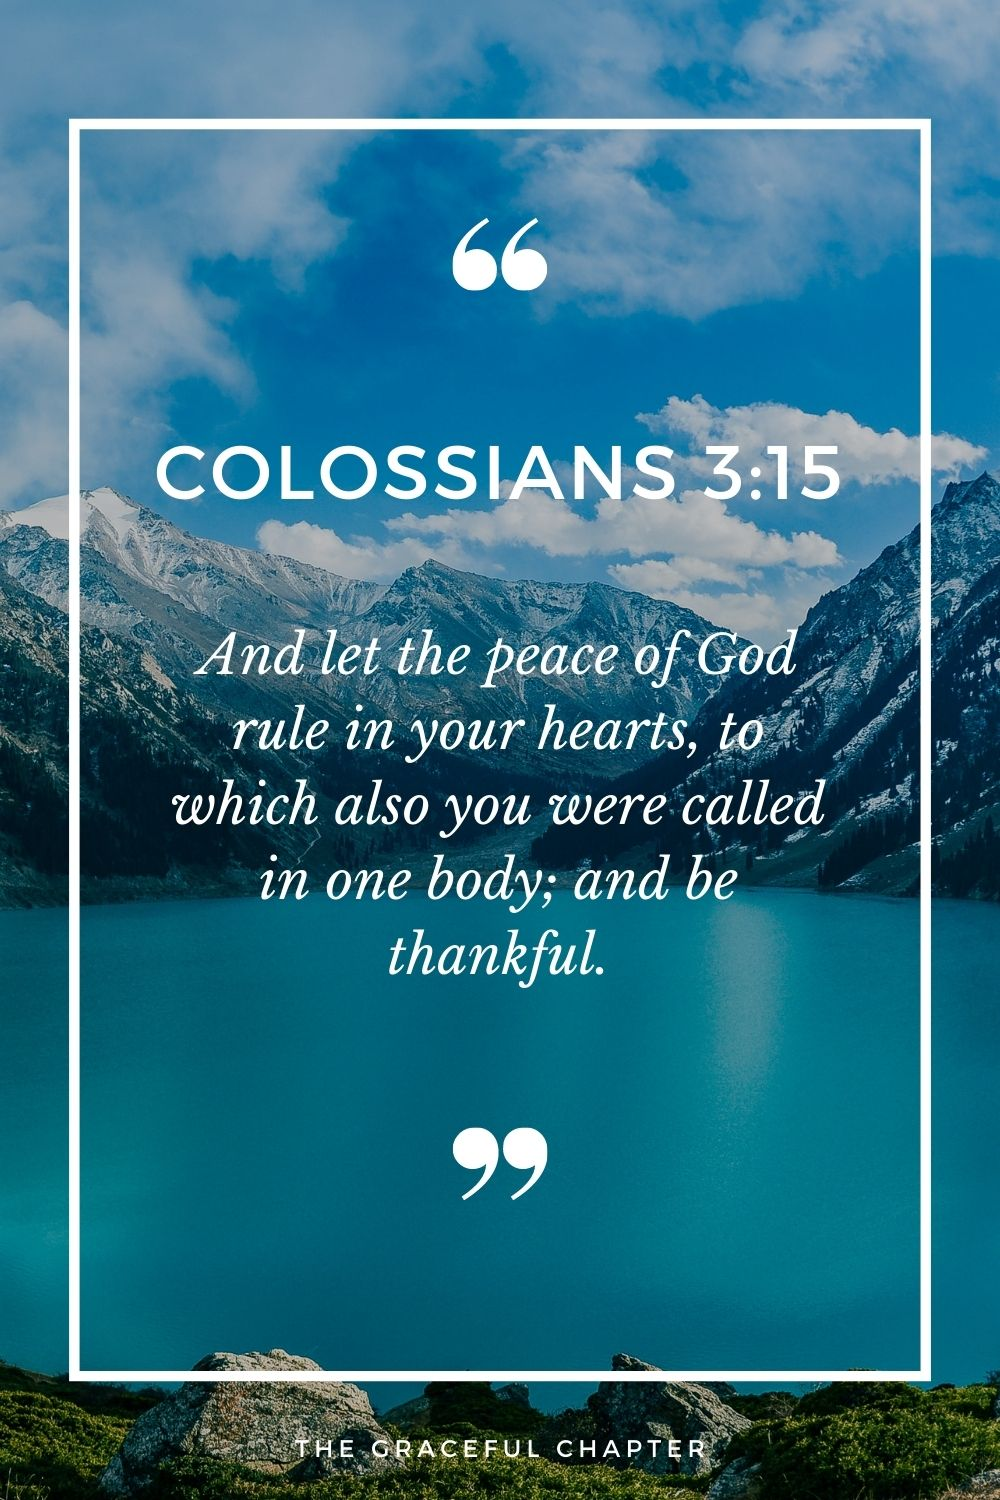 And let the peace of God rule in your hearts, to which also you were called in one body; and be thankful. Colossians 3:15